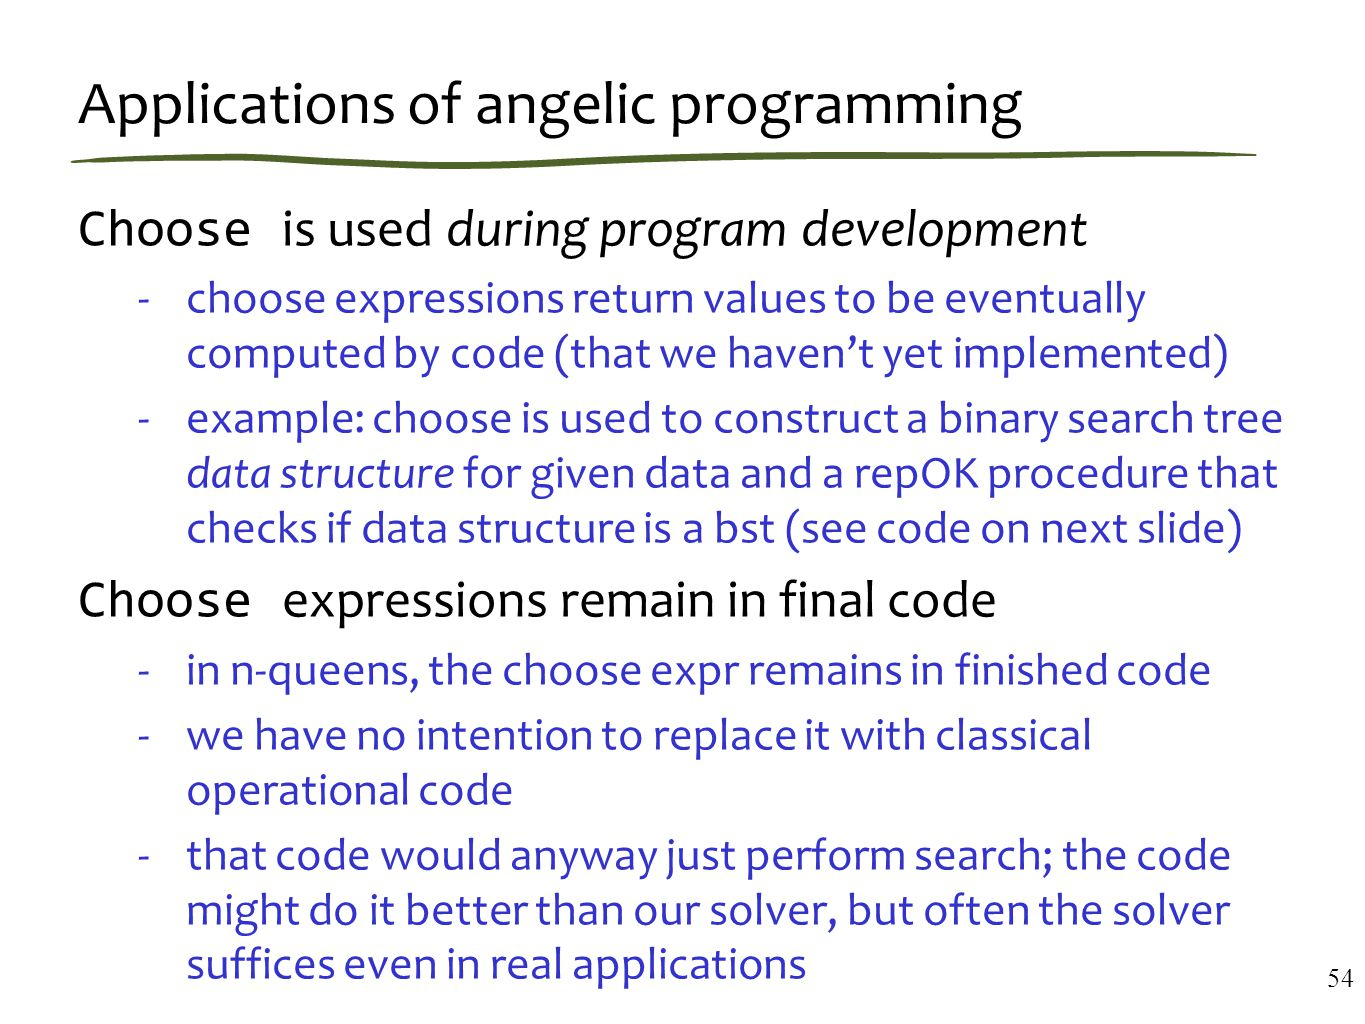 Applications of angelic programming Choose is used during program development -choose expressions return values to be eventually computed by code (that we haven't yet implemented) -example: choose is used to construct a binary search tree data structure for given data and a repOK procedure that checks if data structure is a bst (see code on next slide) Choose expressions remain in final code -in n-queens, the choose expr remains in finished code -we have no intention to replace it with classical operational code -that code would anyway just perform search; the code might do it better than our solver, but often the solver suffices even in real applications 54